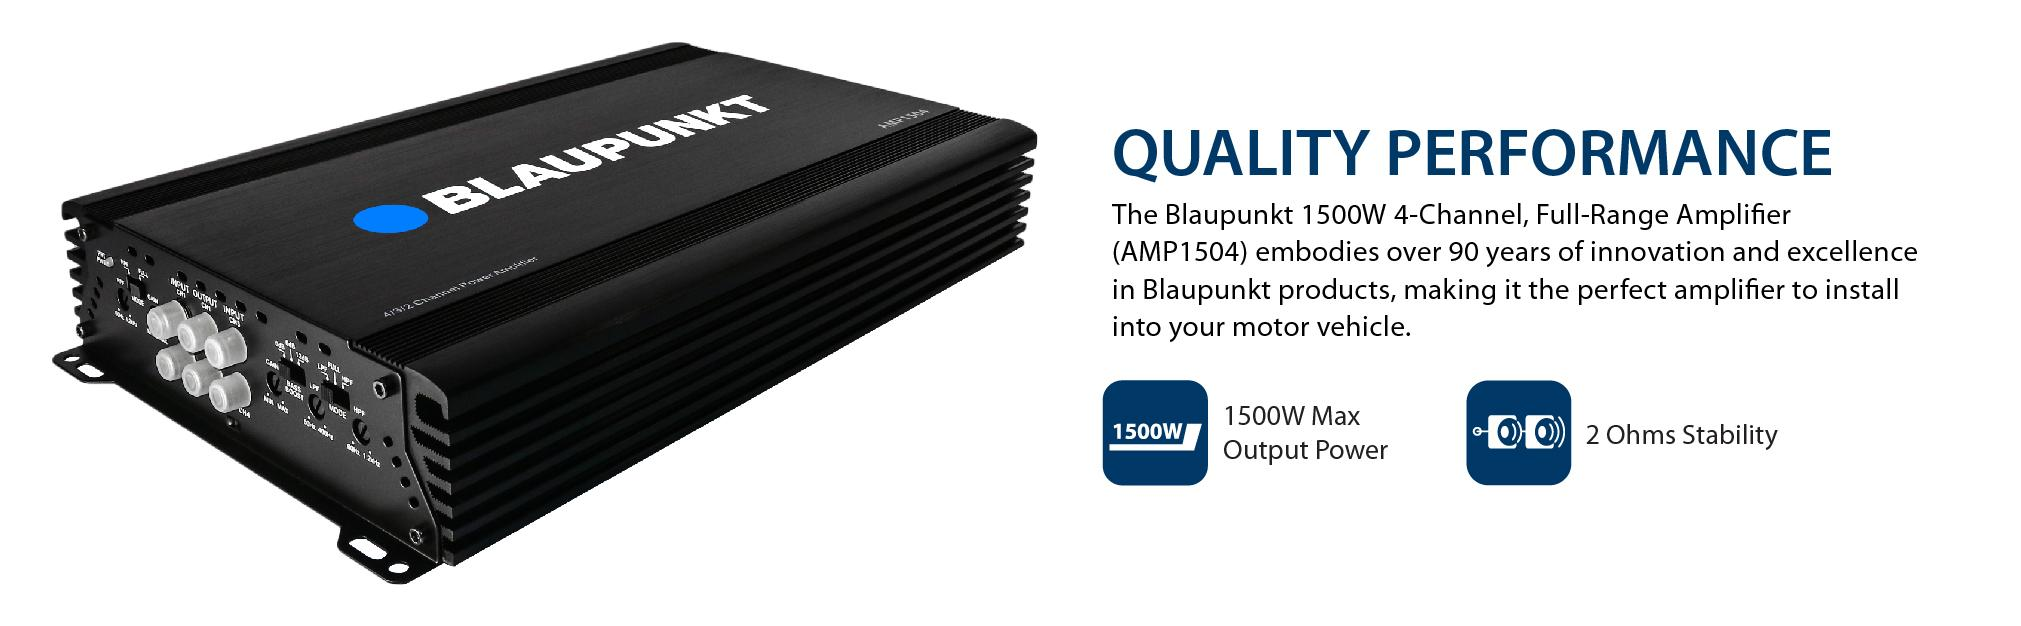 Blaupunkt 4 Channel Amp Wiring Diagram Automotive Jl Auto Amazon Com 1500w Full Range Amplifier Rh Speakers And Sub